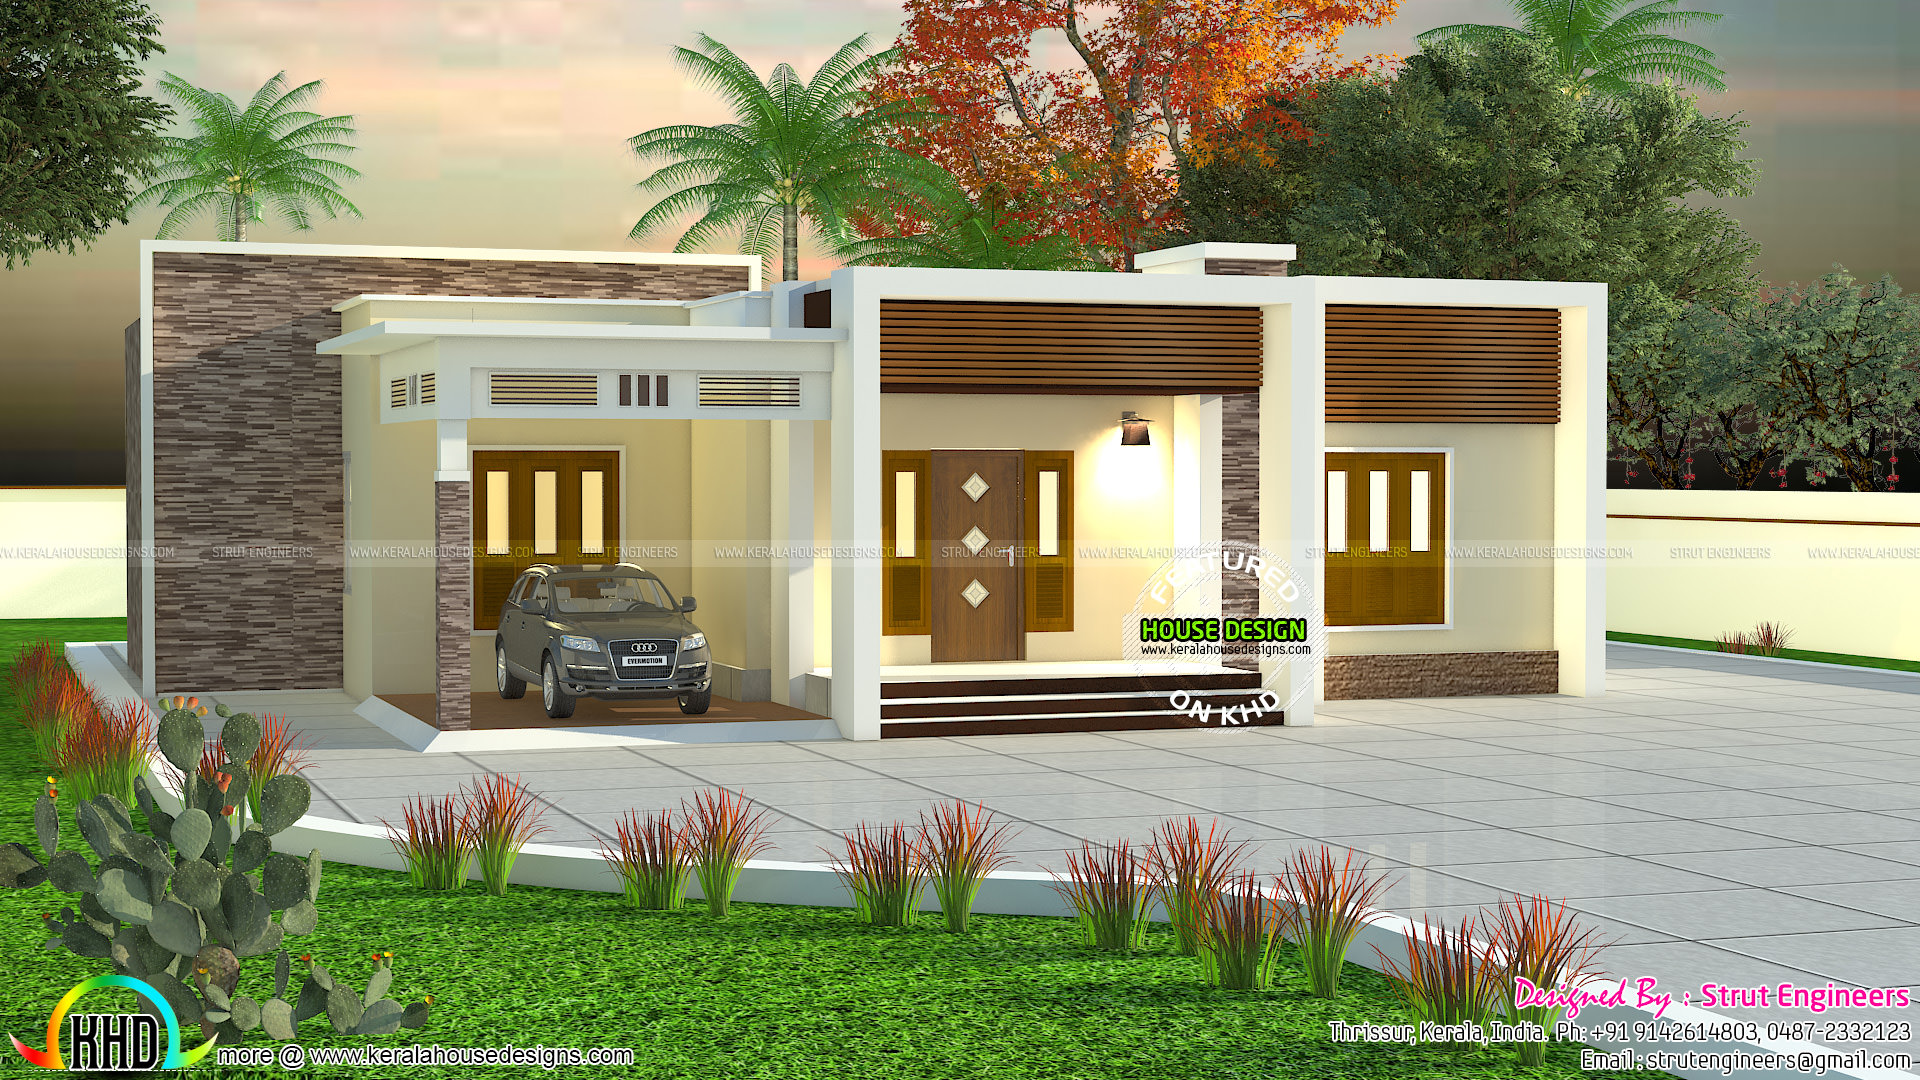 900 sq ft 2 bhk flat roof house kerala home design and for 900 square feet house